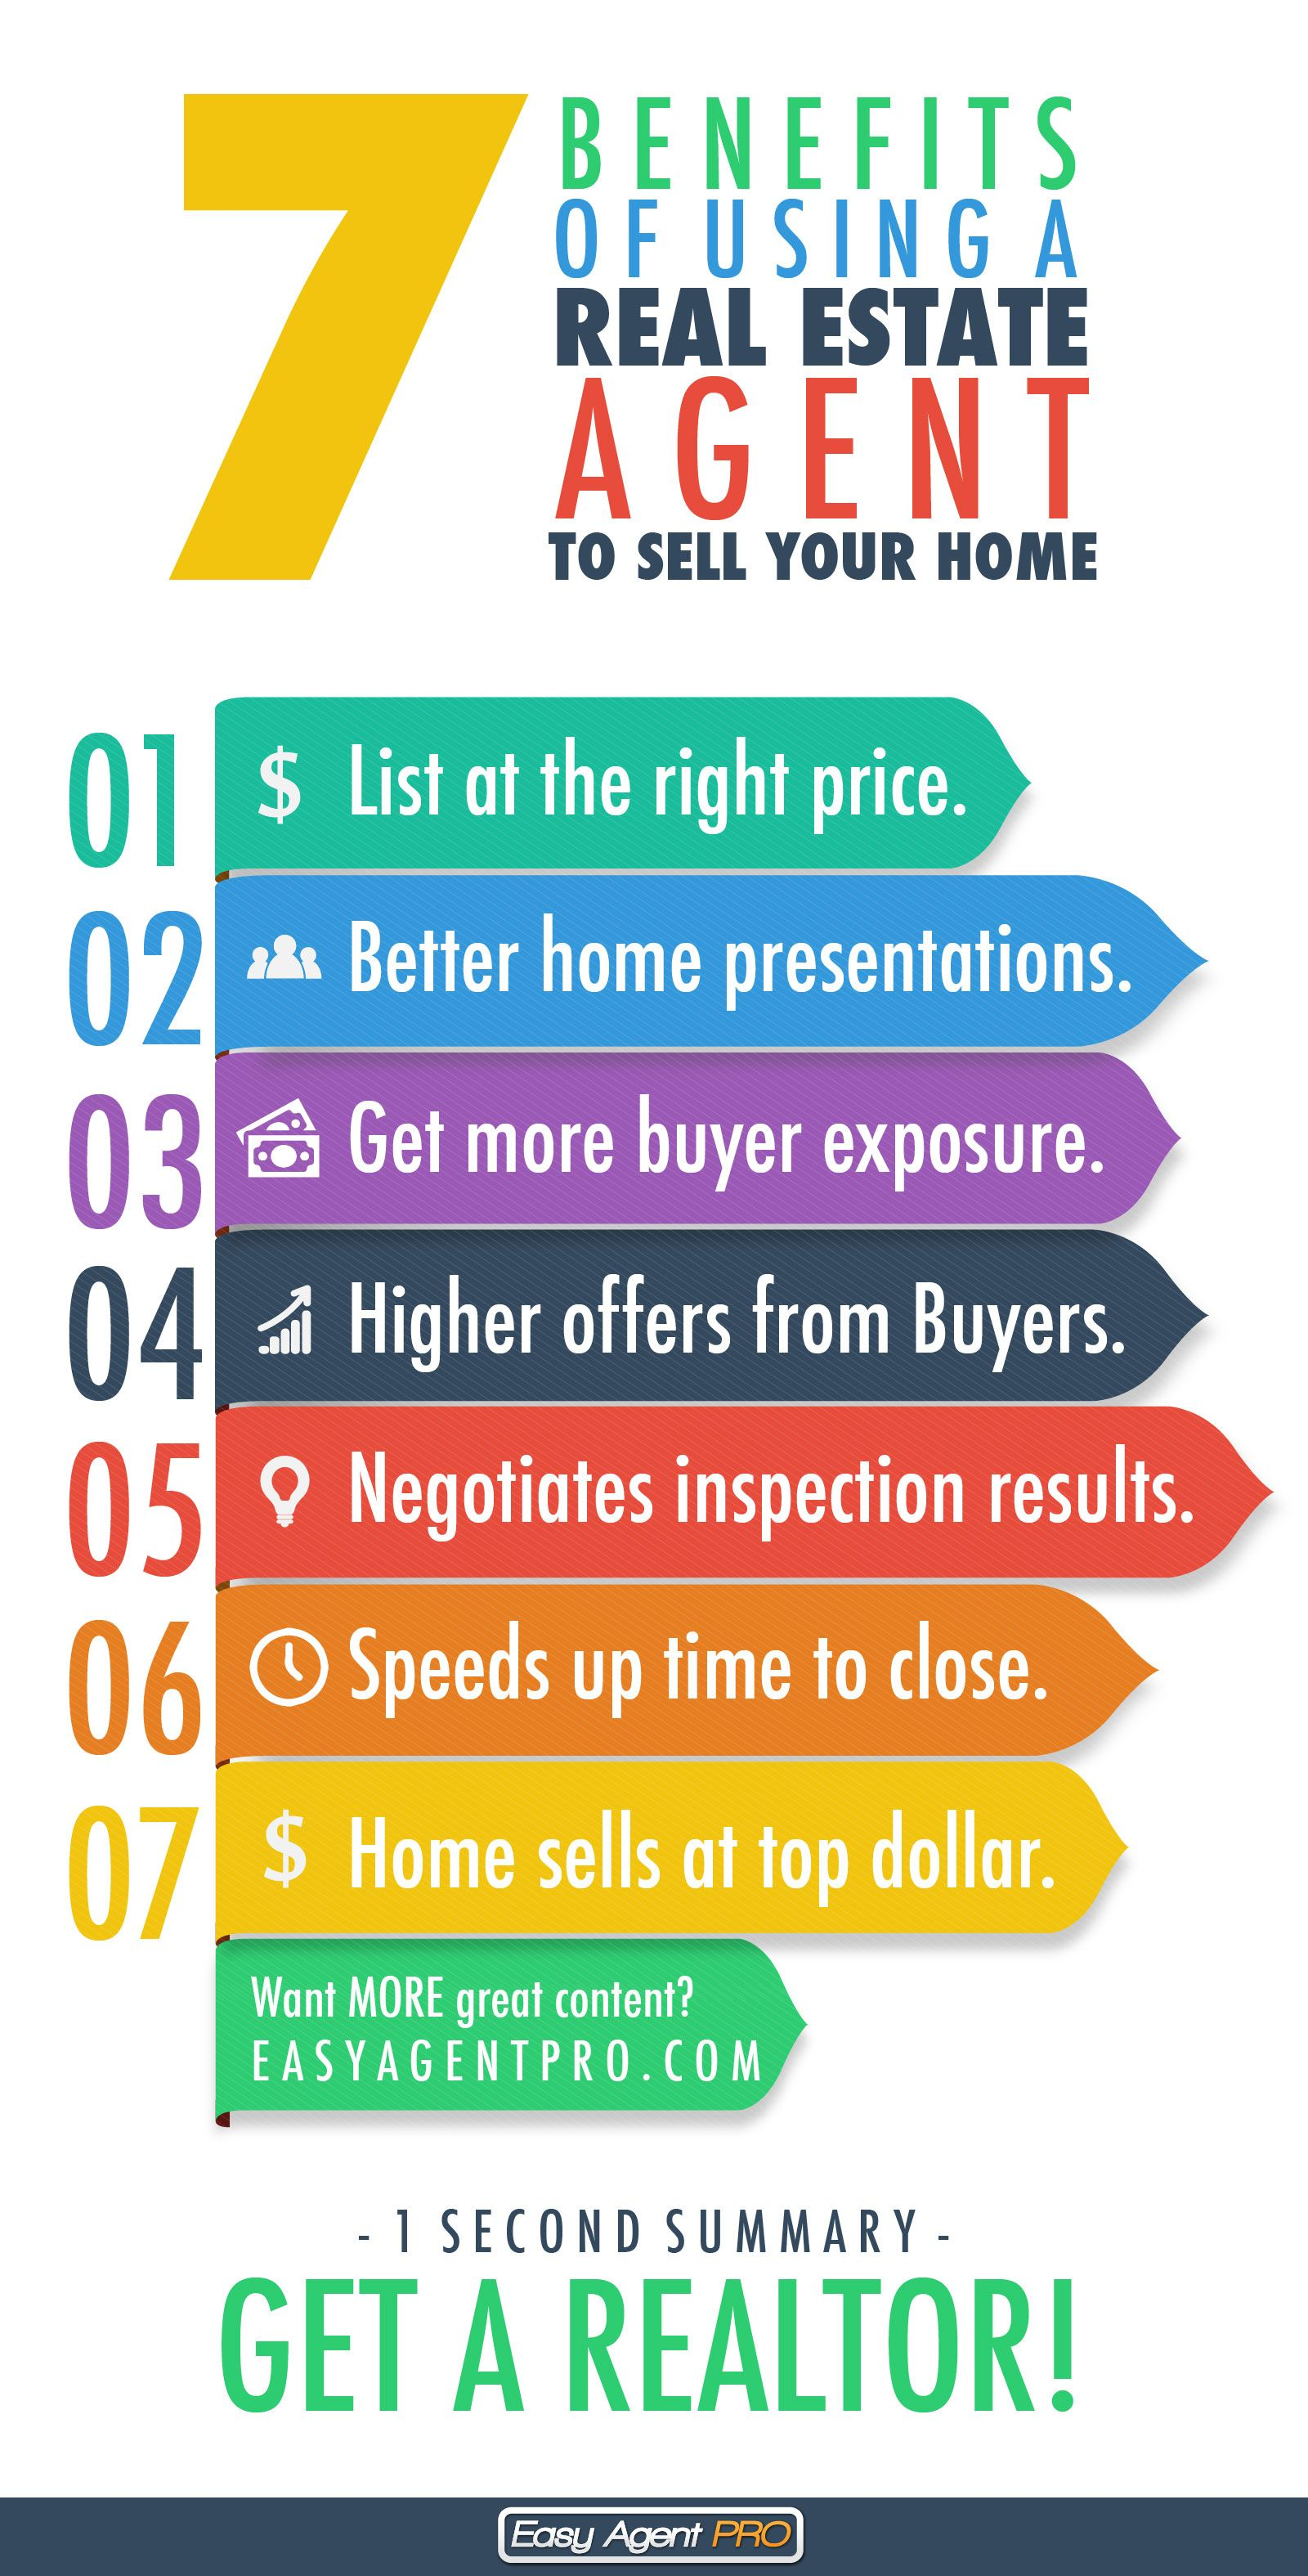 7 Reasons To Use A Real Estate Agent To Sell Your Home ...